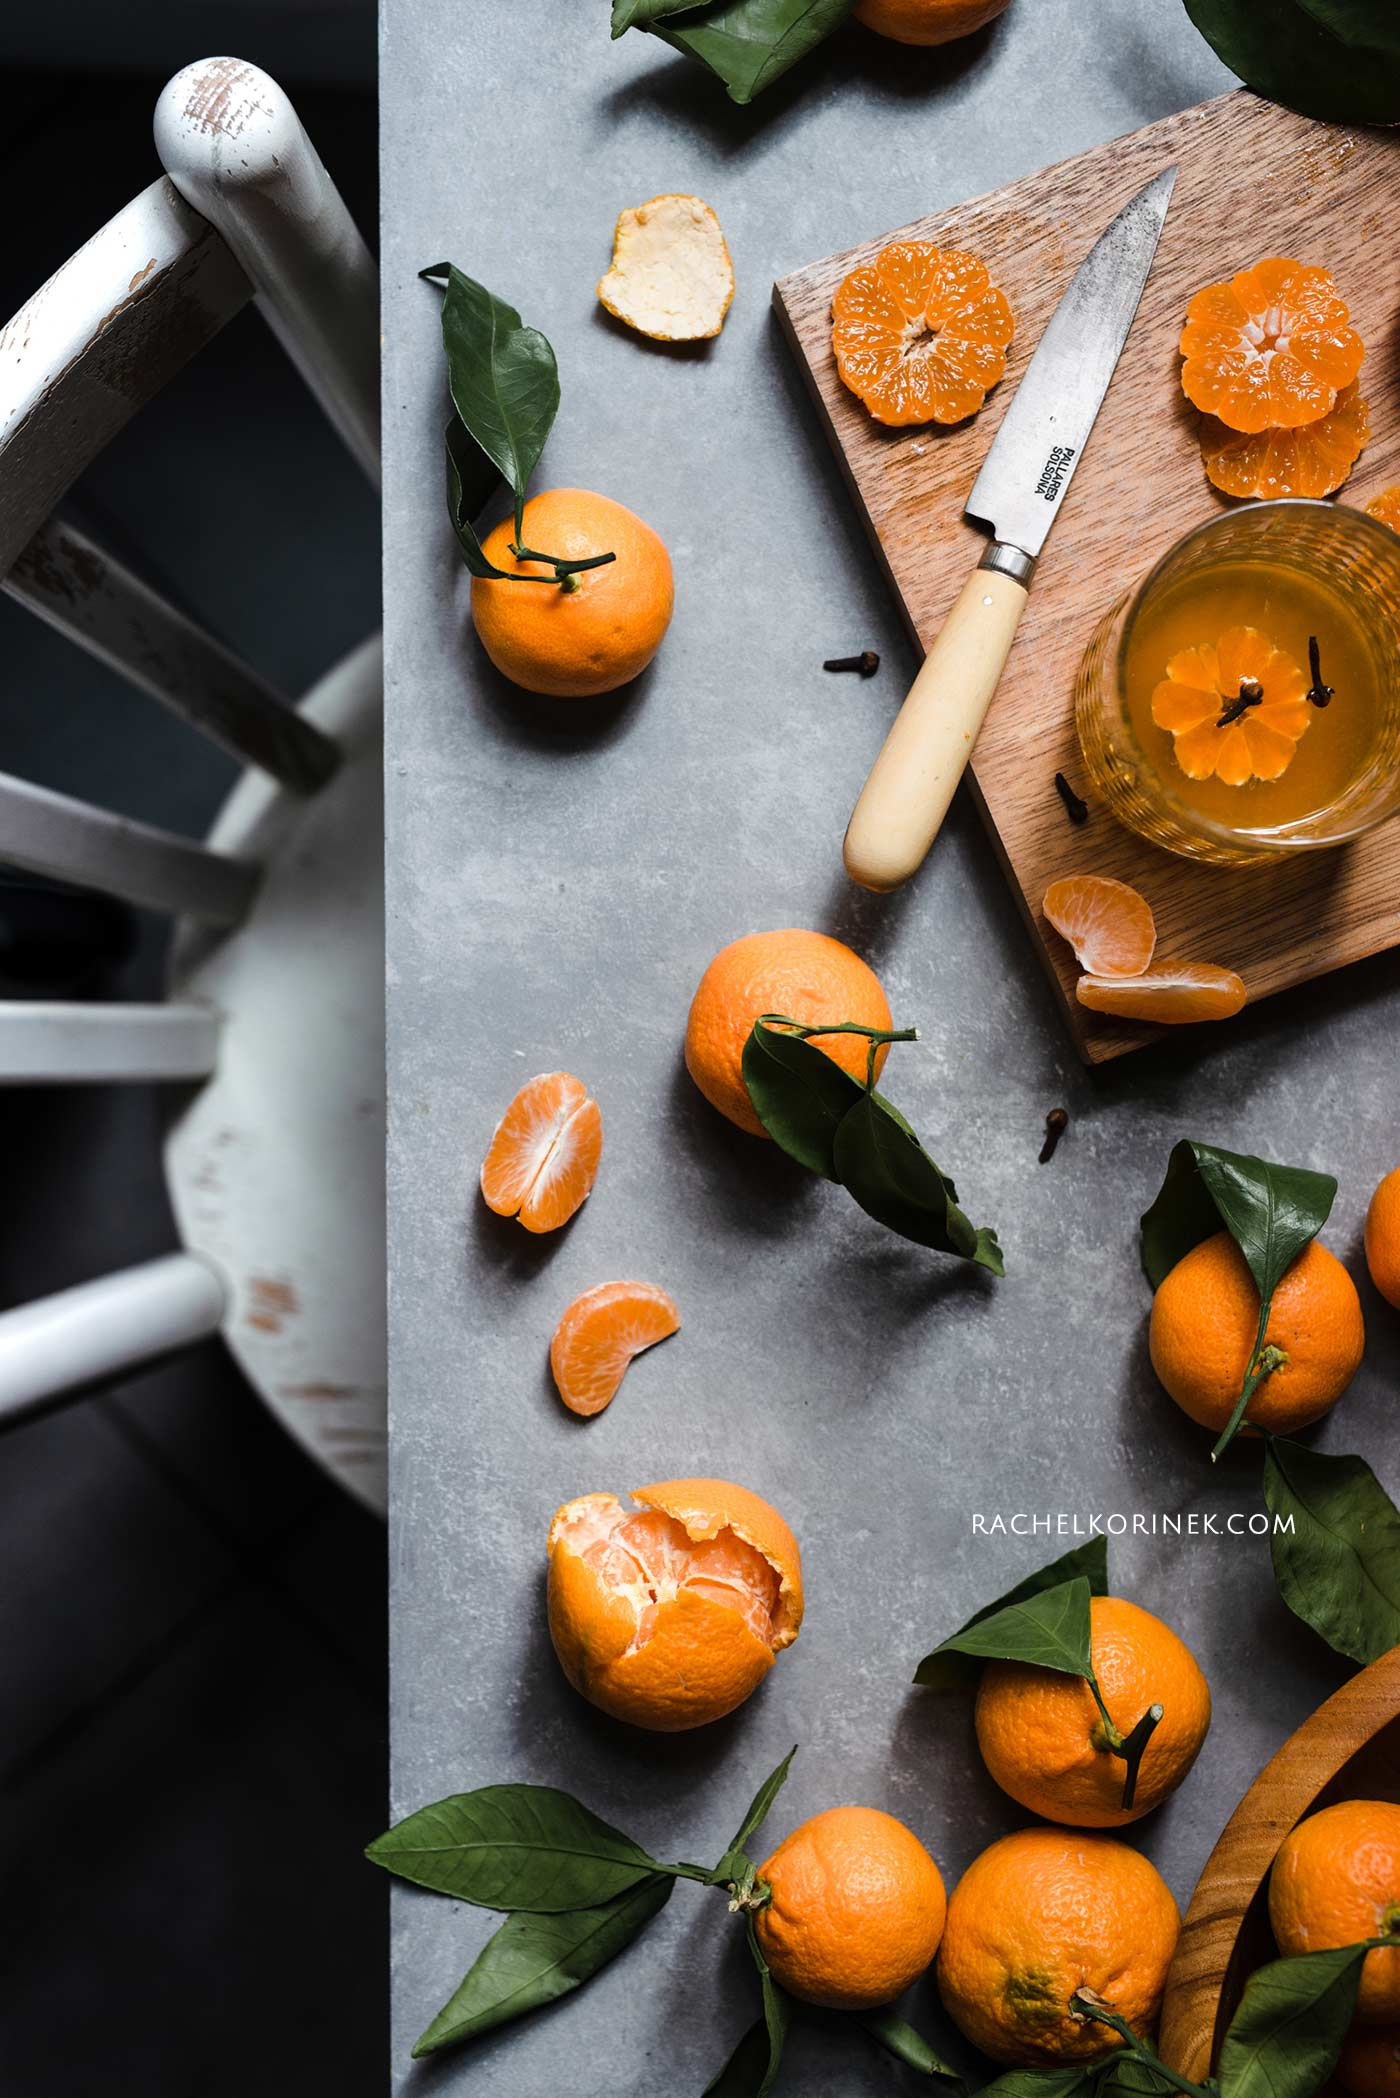 Rachel Korinek | Food Photographer Satsuma Mandarin Flatlay  Click to check out my latest food photography projects.  #twolovesstudio #beautifulcuisine #foodbloggerpro #foodphotography #learnfoodphotography #foodblogger #learnphotography #foodstyling #lightingtips #naturallight #foodphotographer